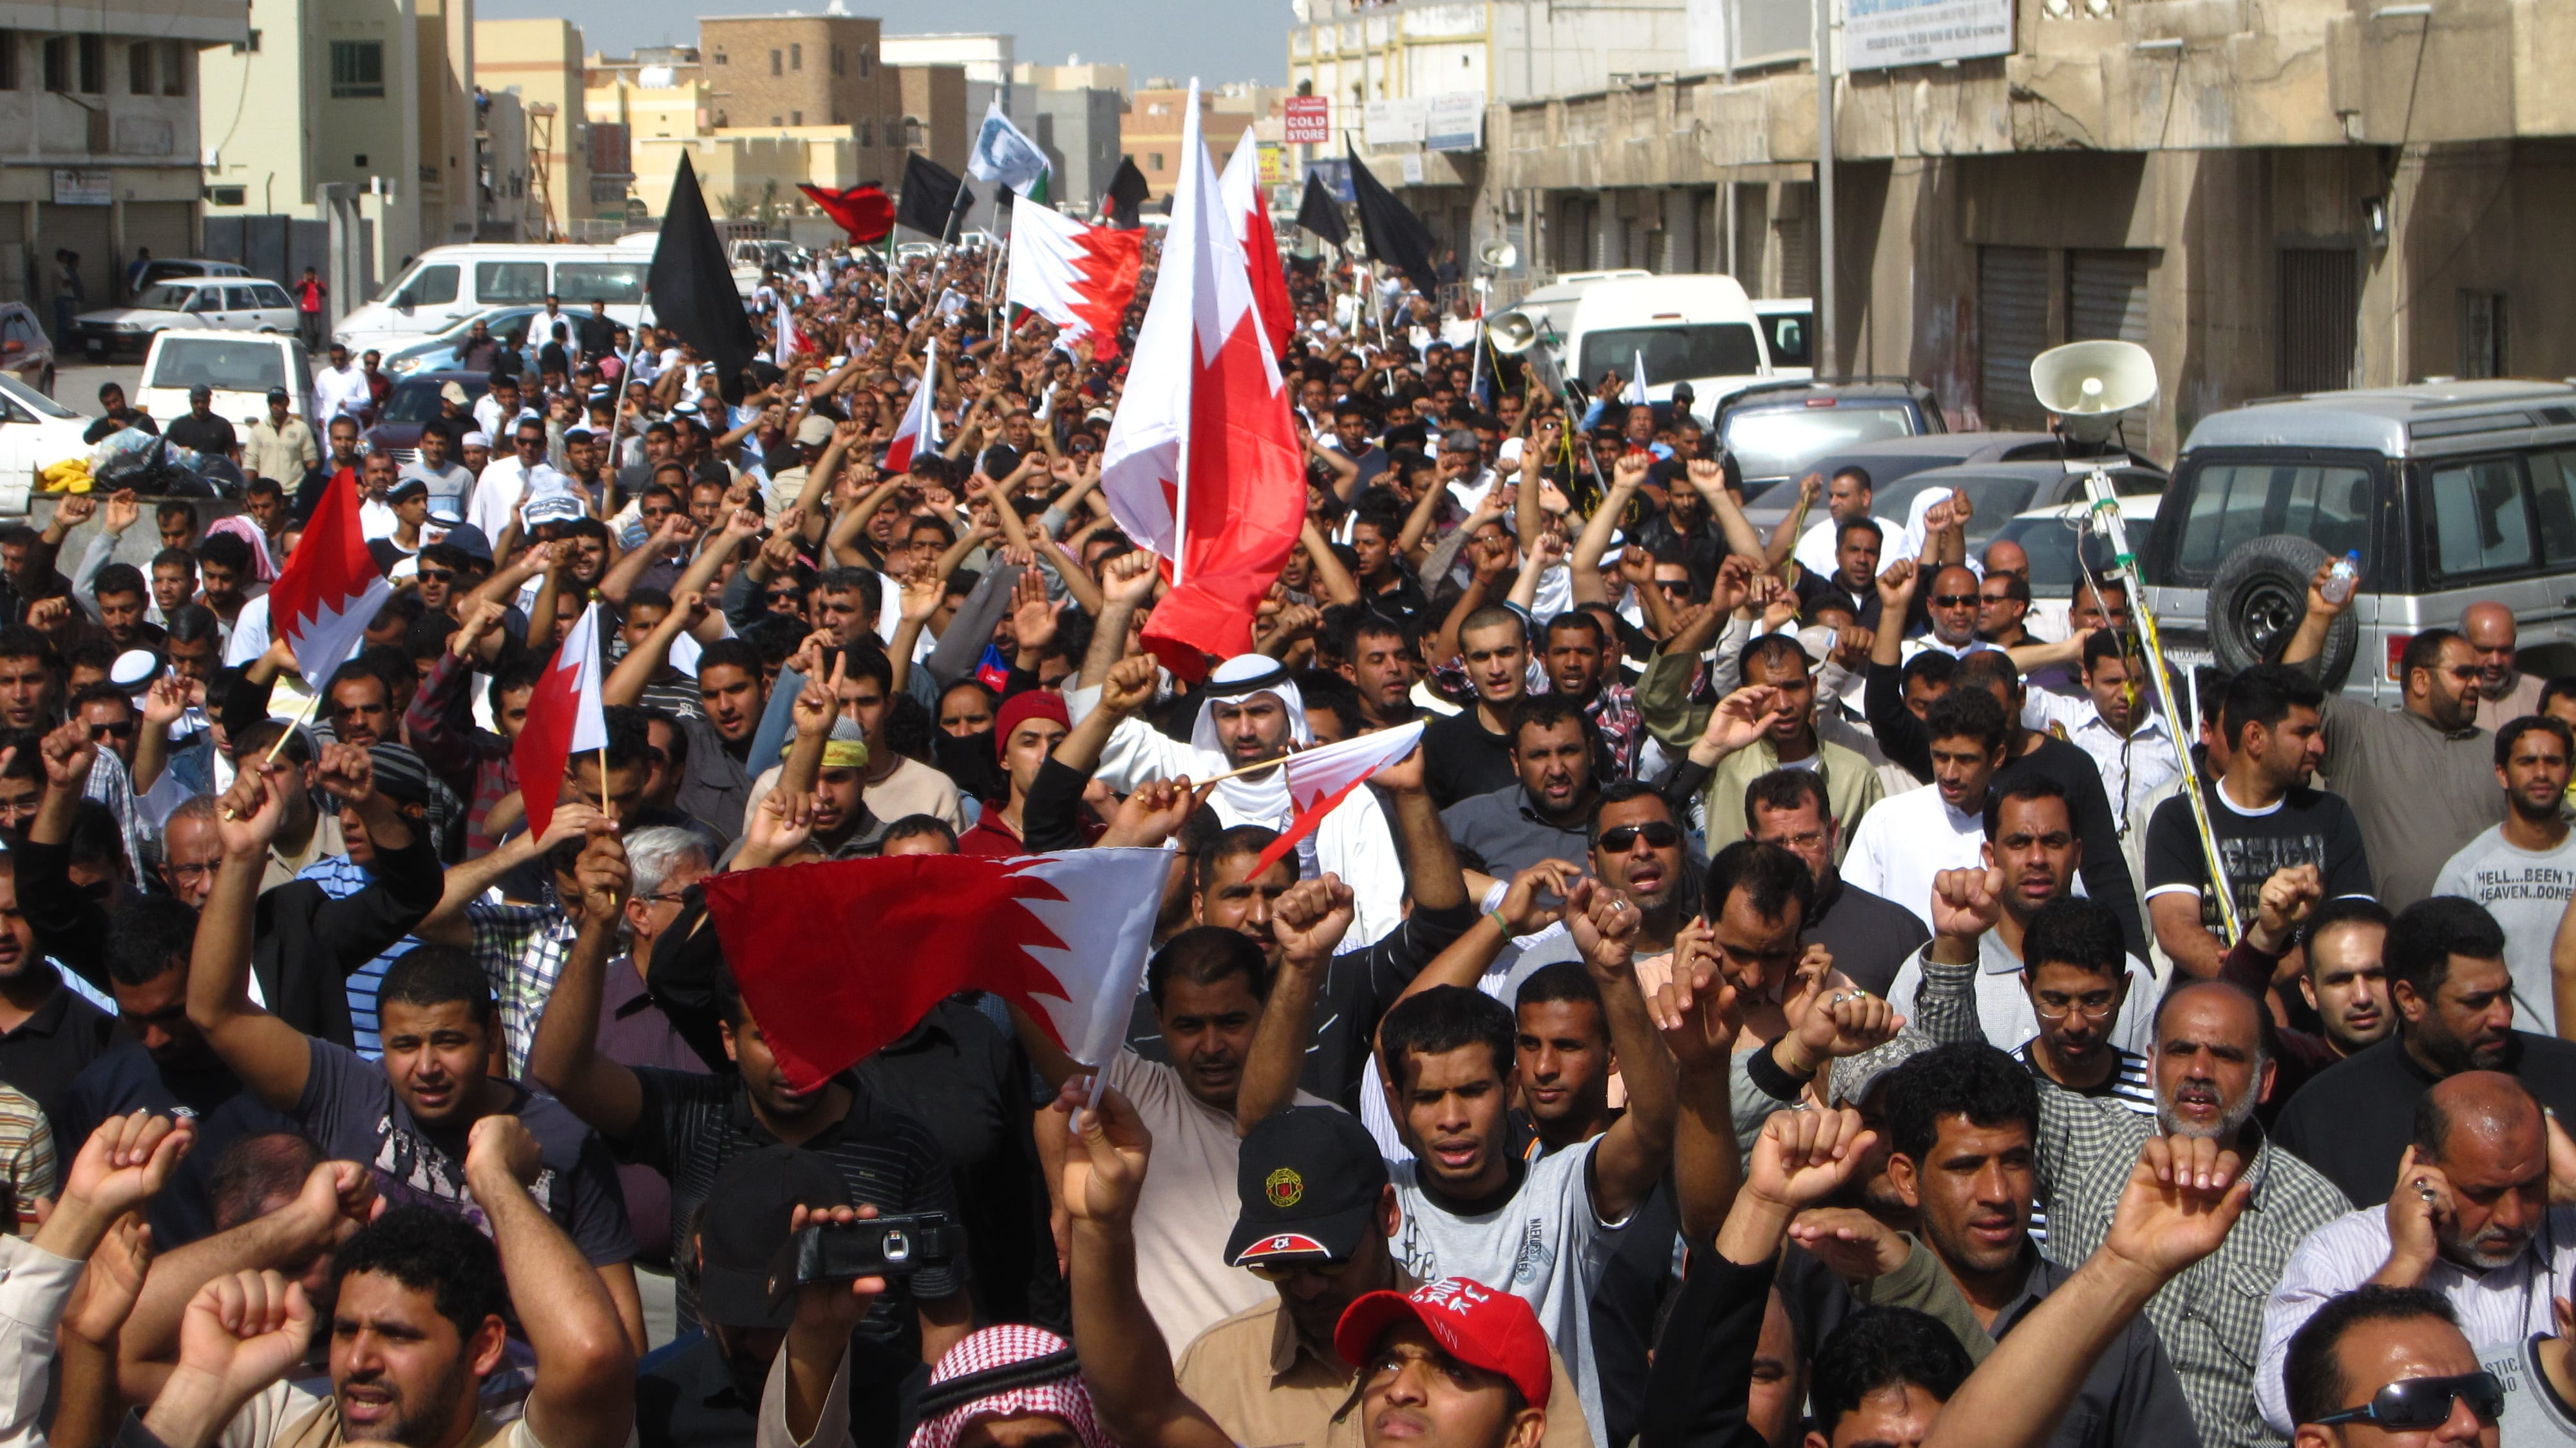 The Power of Strategic Nonviolent Action in Arab Revolutions